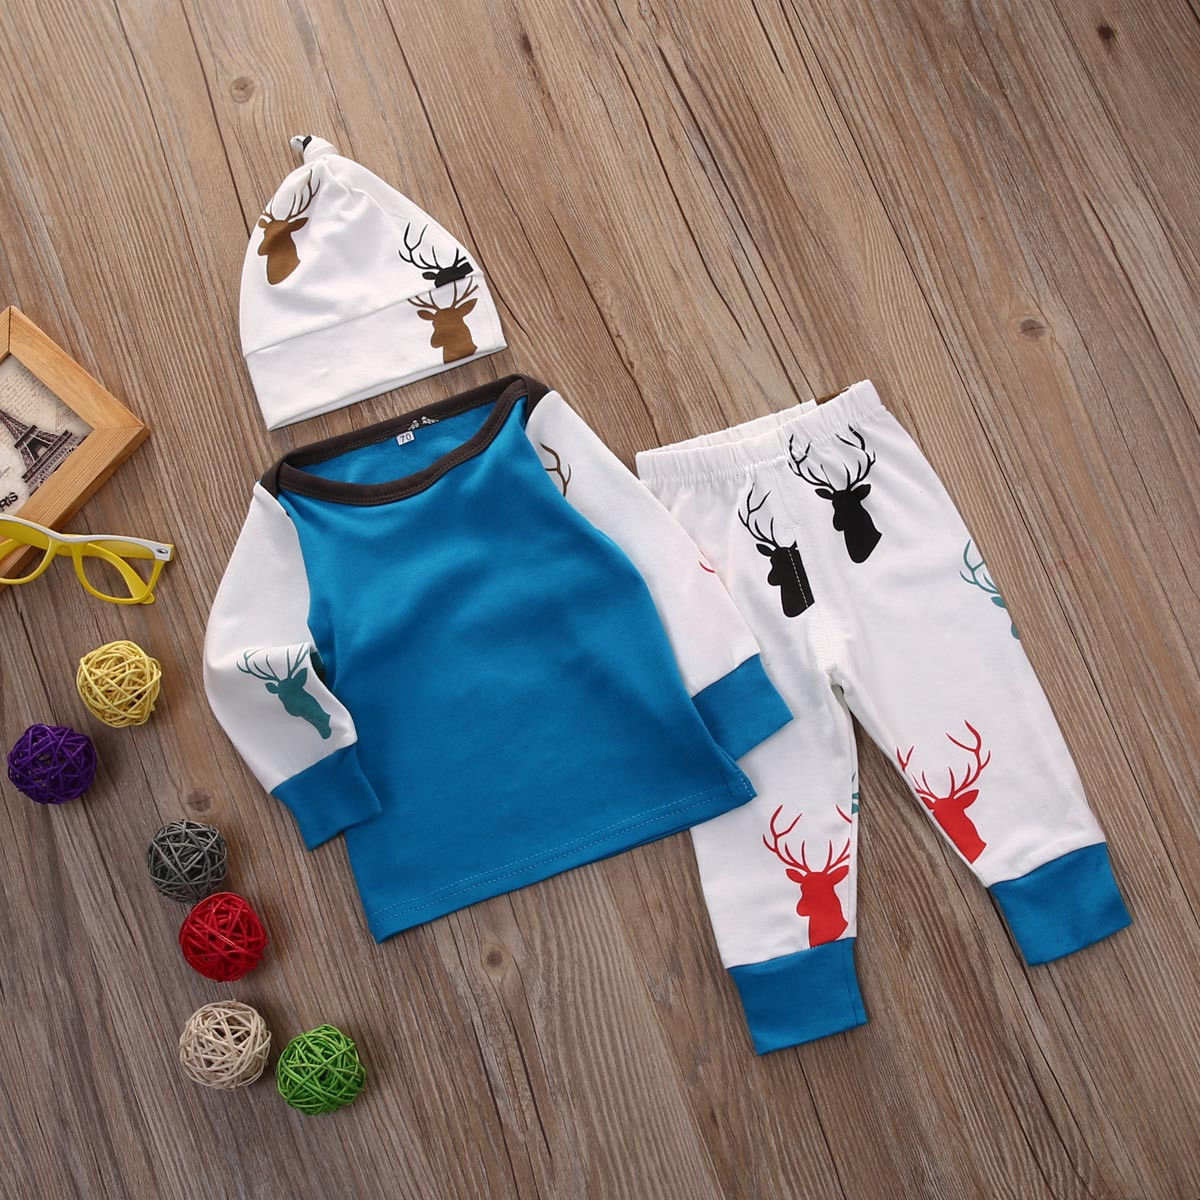 3Pcs Newborn Infant Baby Boys Girls Clothing Set 3pcs Top Deer Pants Leggings Hat Cotton Clothes Outfit Set Baby Boy Girl newborn baby boy girl 5 pcs clothing set cotton cartoon monk tops pants bib hats infant clothes 0 3 months hight quality